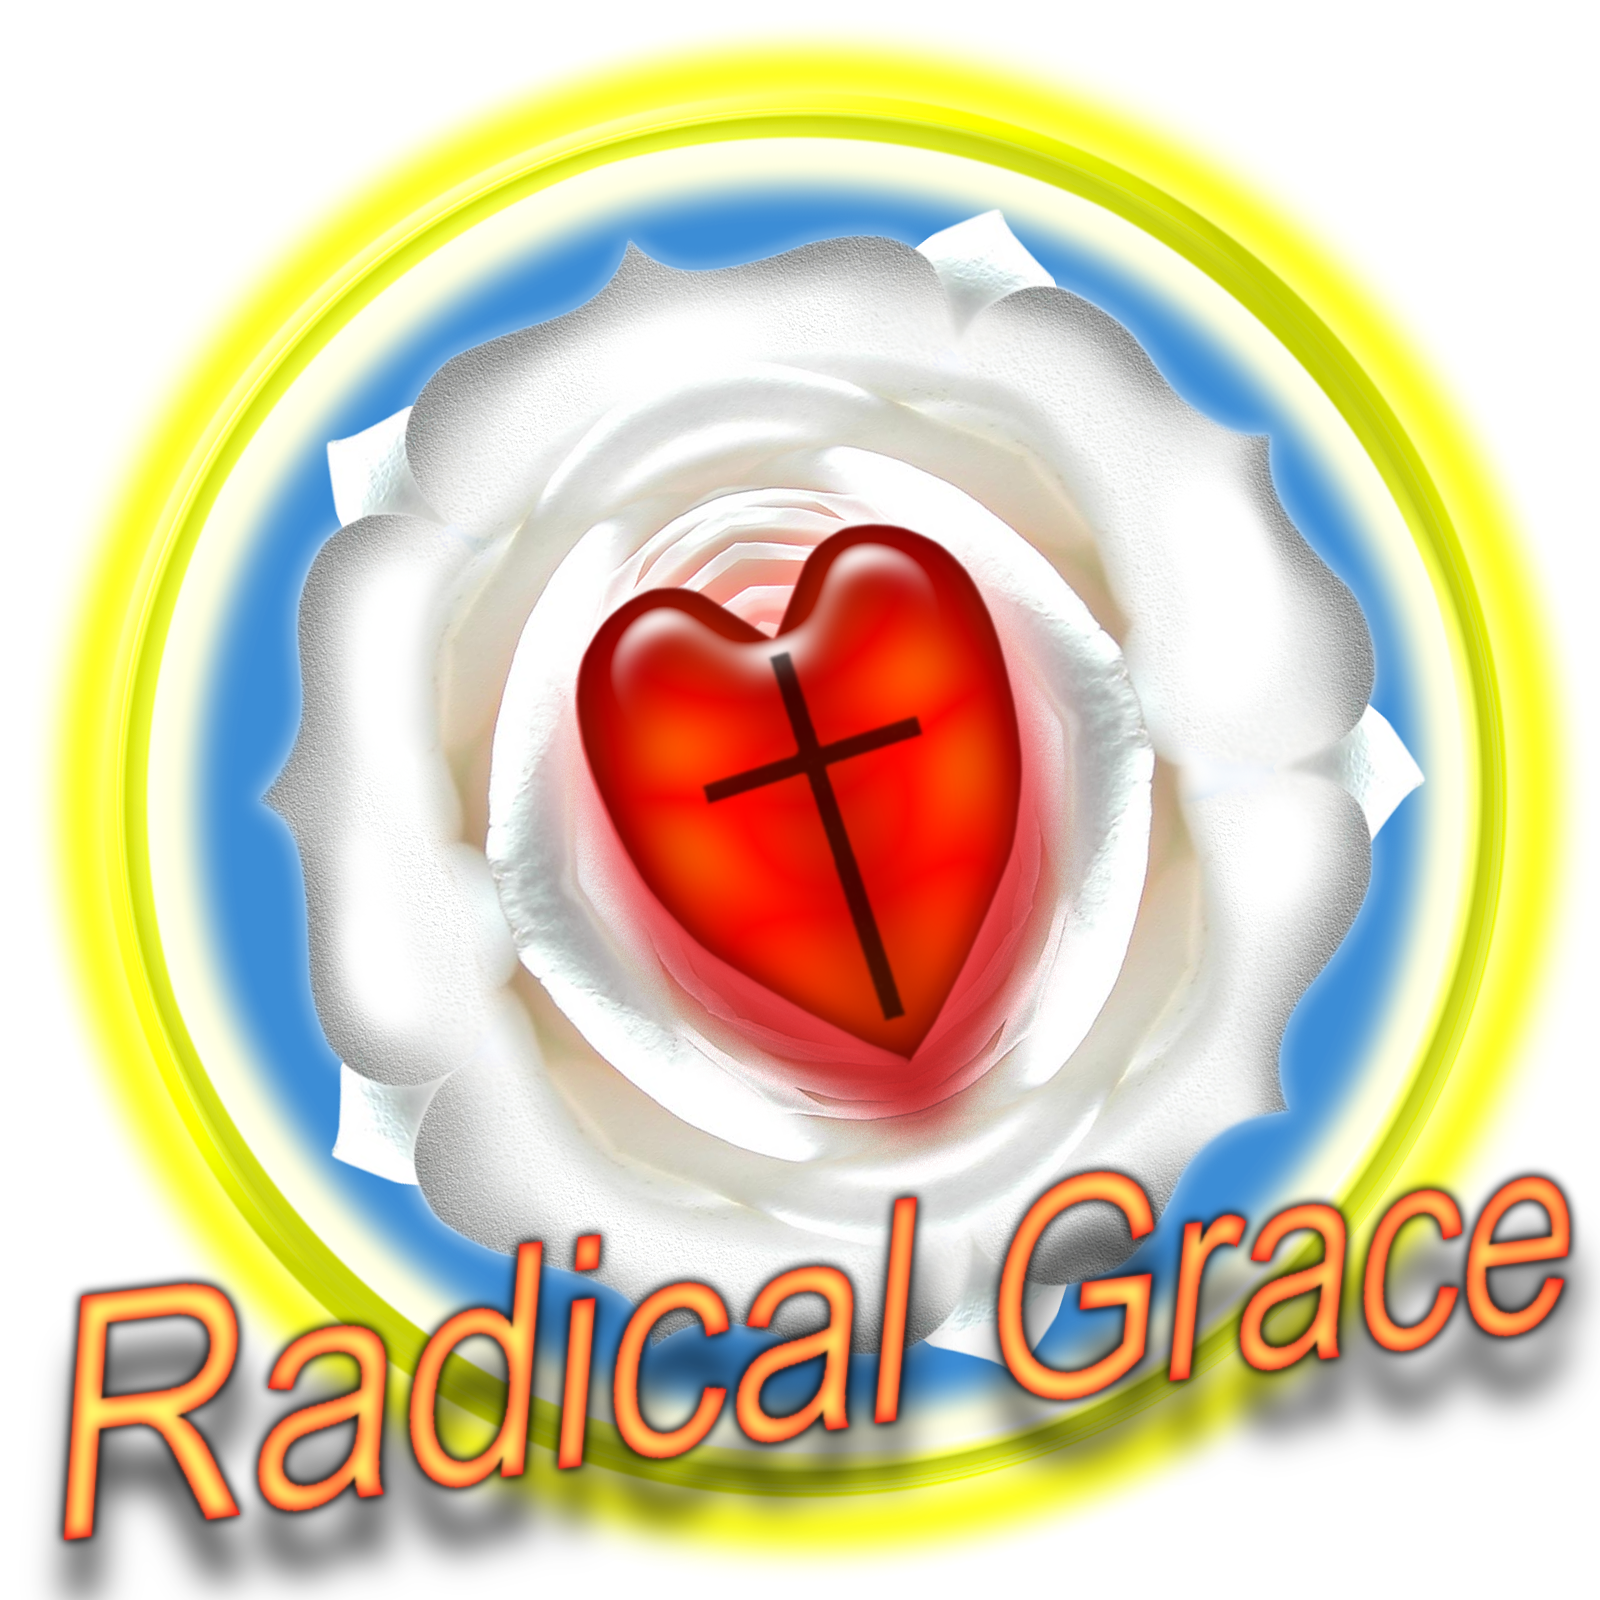 Radical Grace/The Lutheran Difference logo